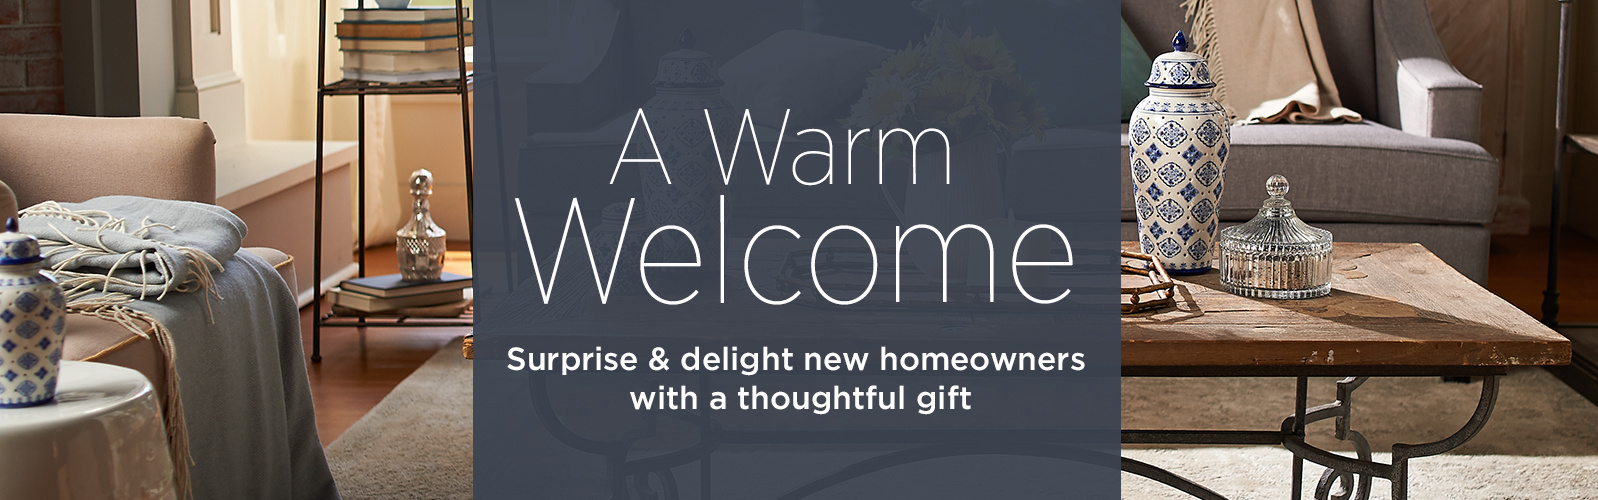 A Warm Welcome  Surprise & delight new homeowners with a thoughtful gift